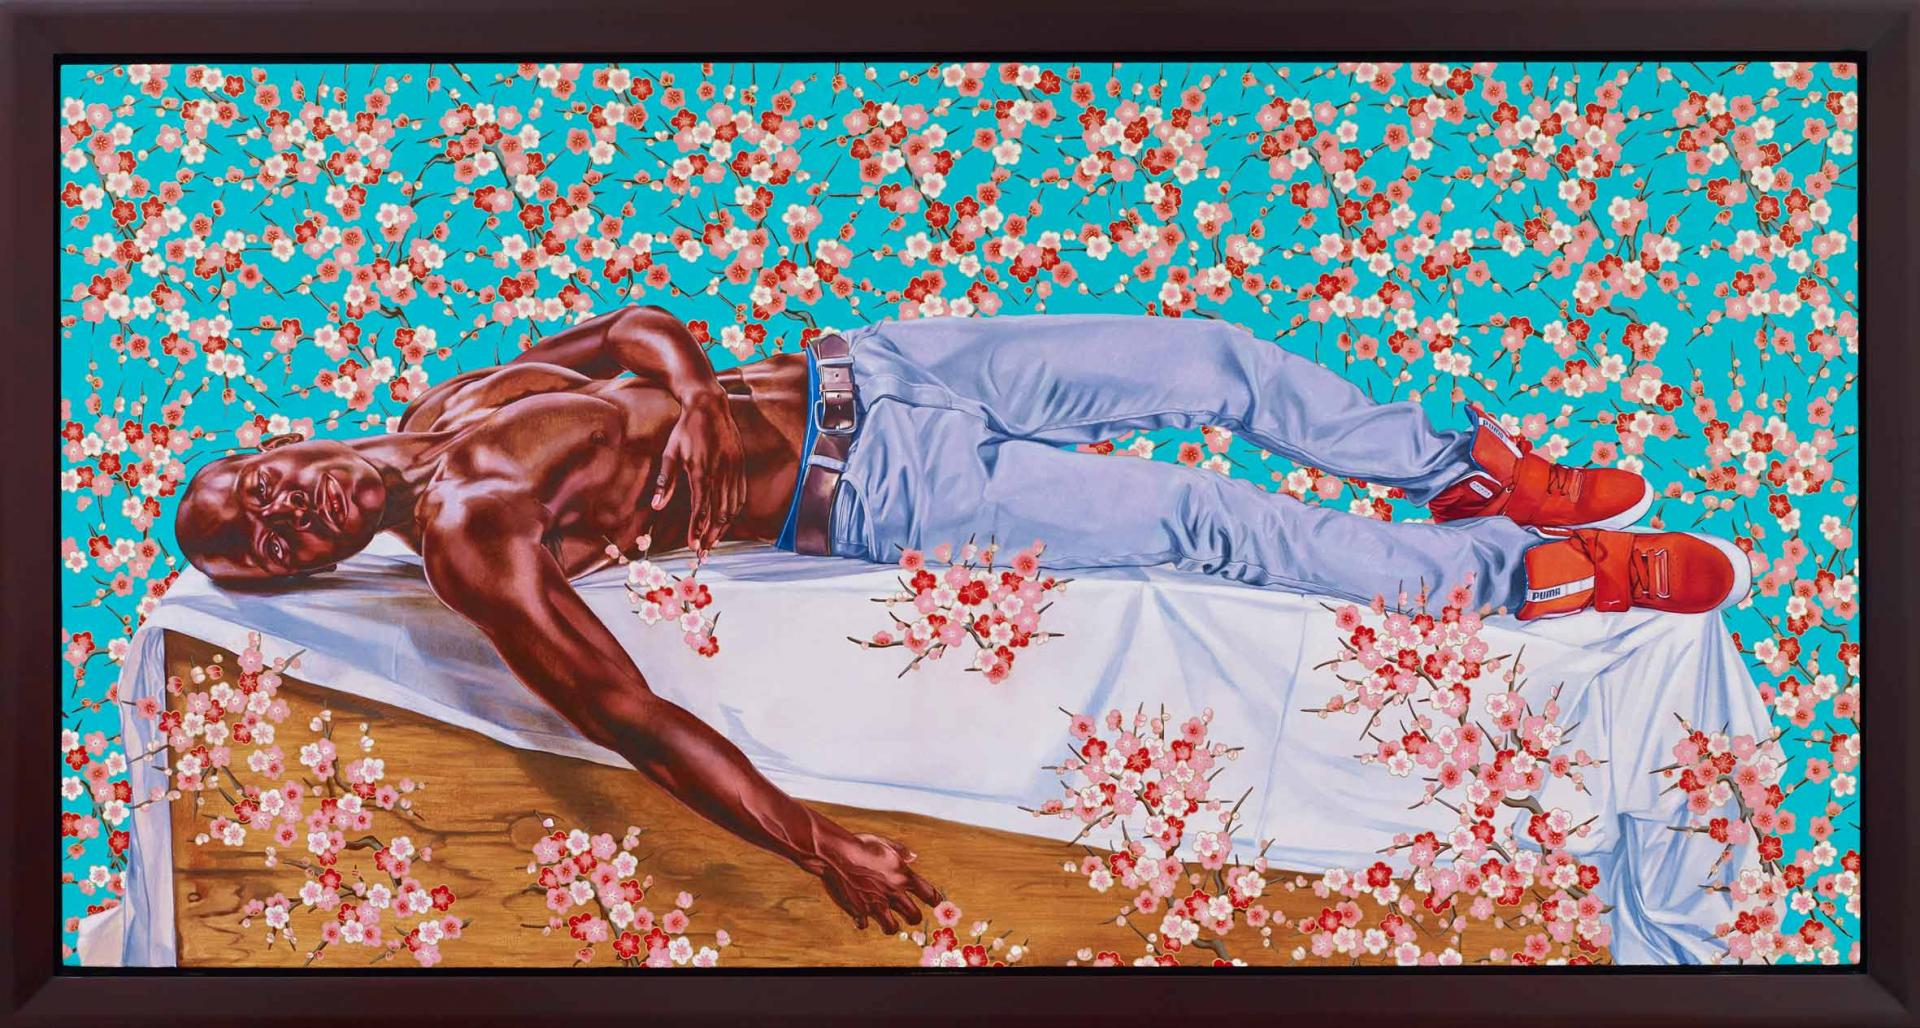 kehinde_wiley_sorry_we_re_closed_133.jpg